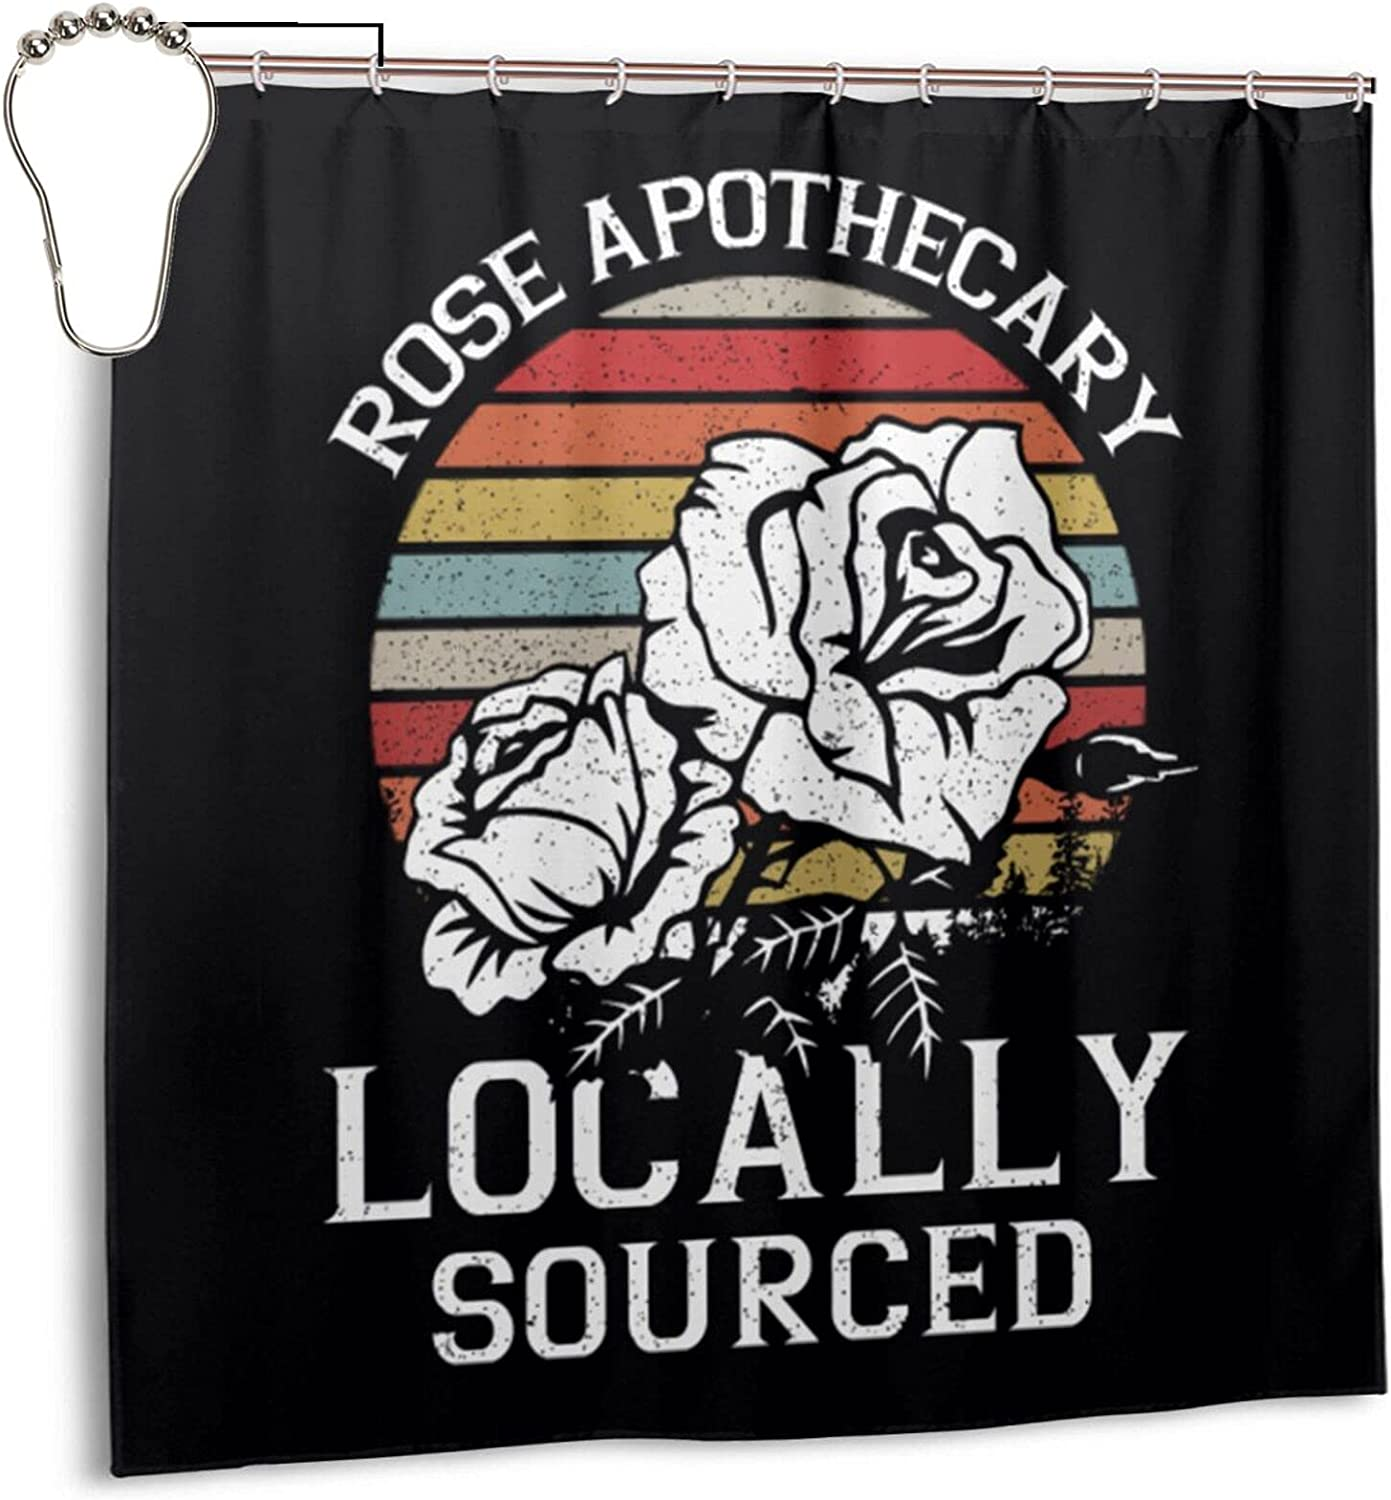 Vintage Rose Apothecary Logo Shower Curtain Bathroom Hotel Q 2020 新作 最安値 for